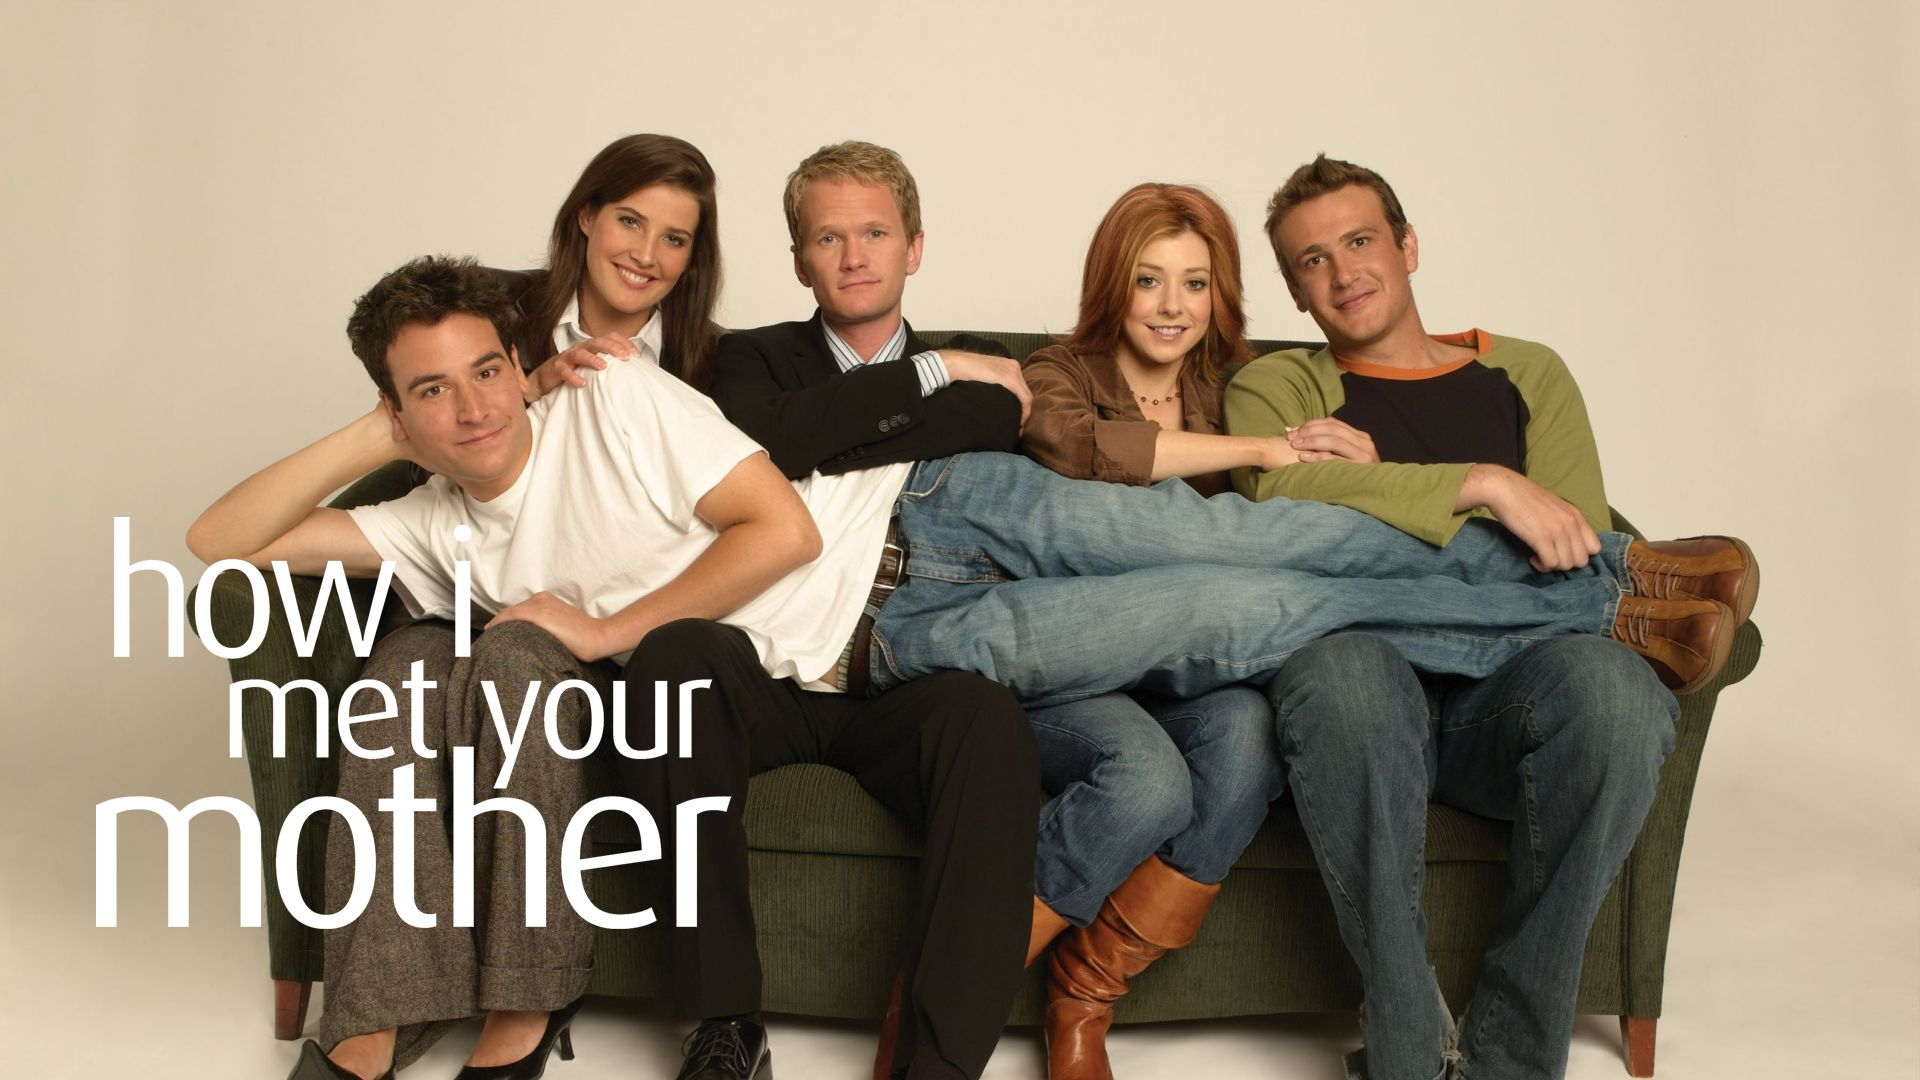 How I Met Your Mother sairá do catálogo da Netflix